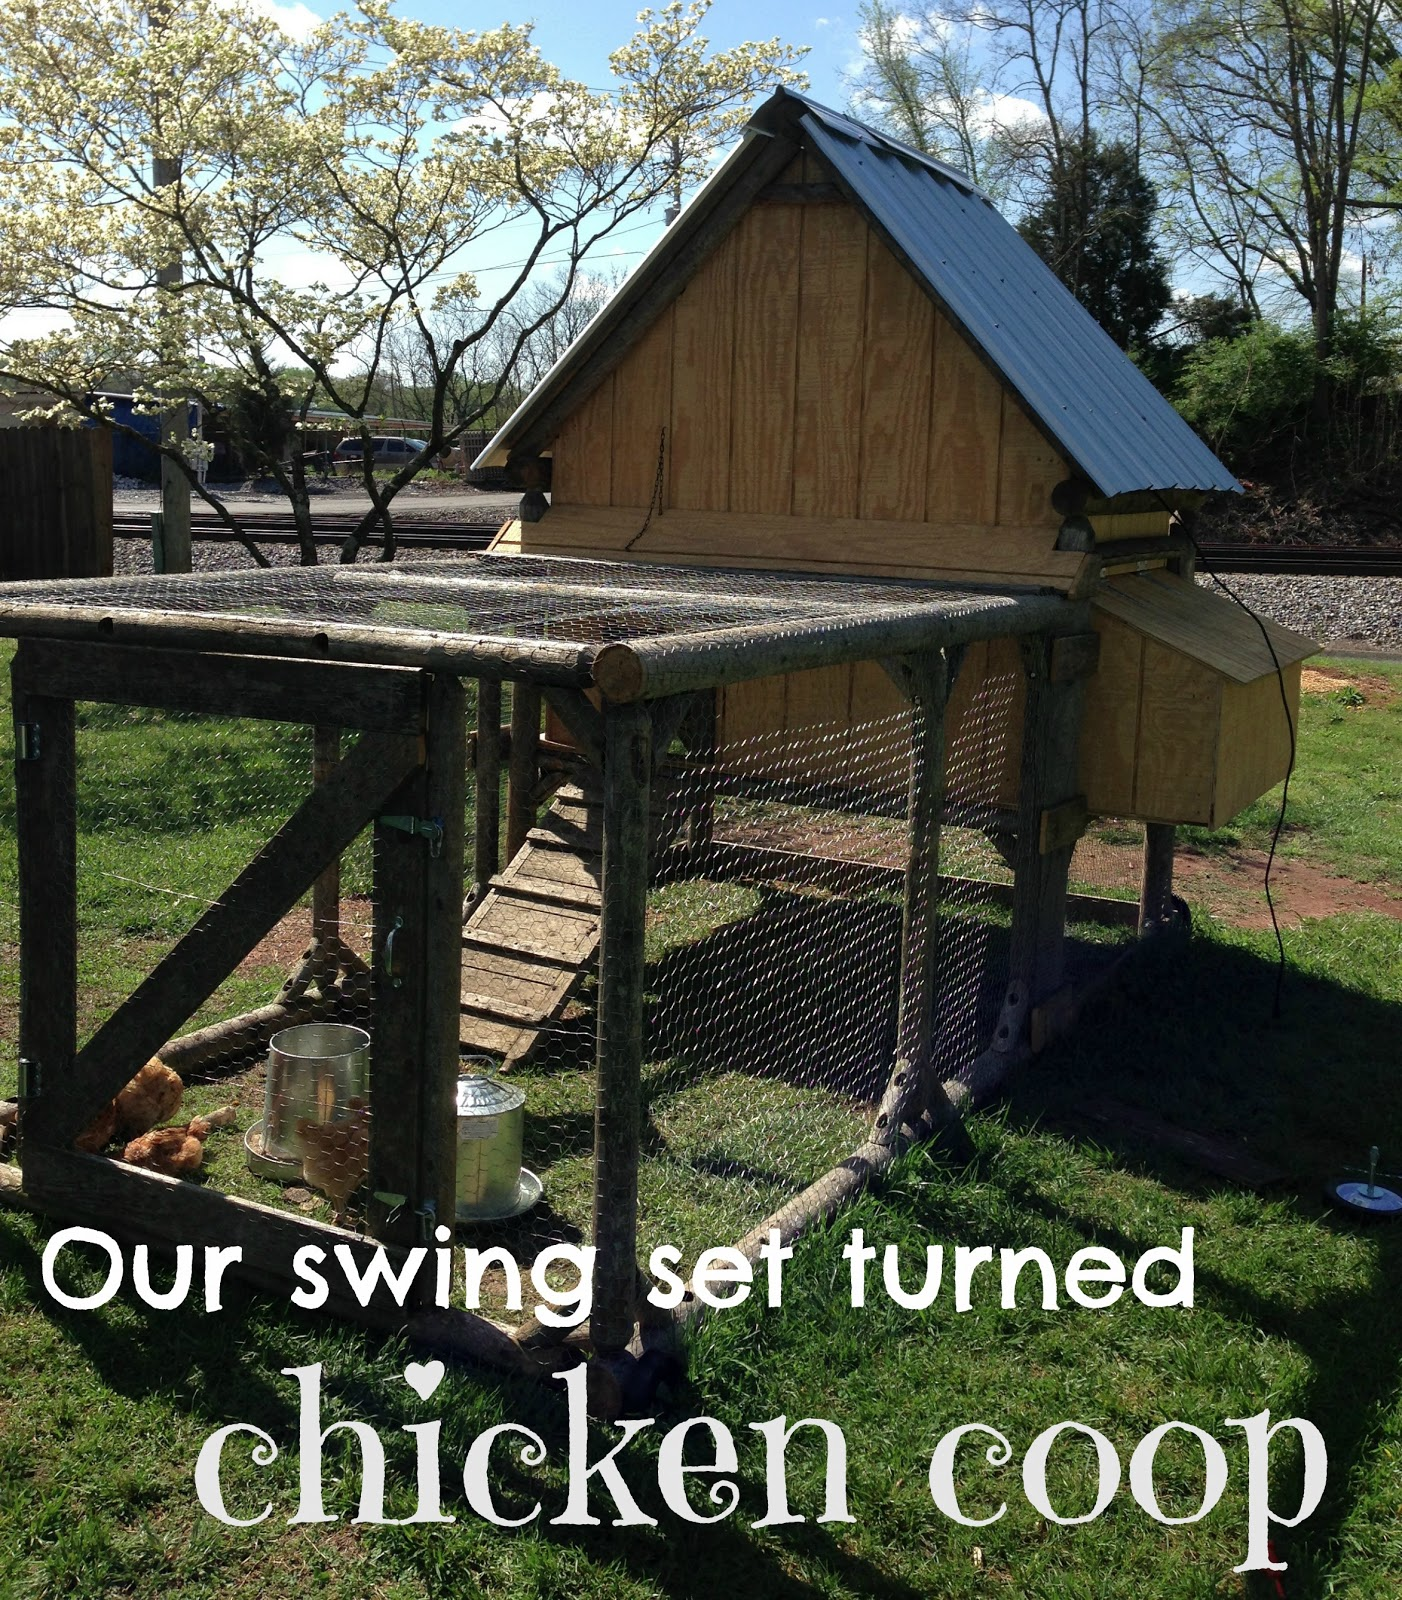 Our Swing Set Turned Chicken Coop